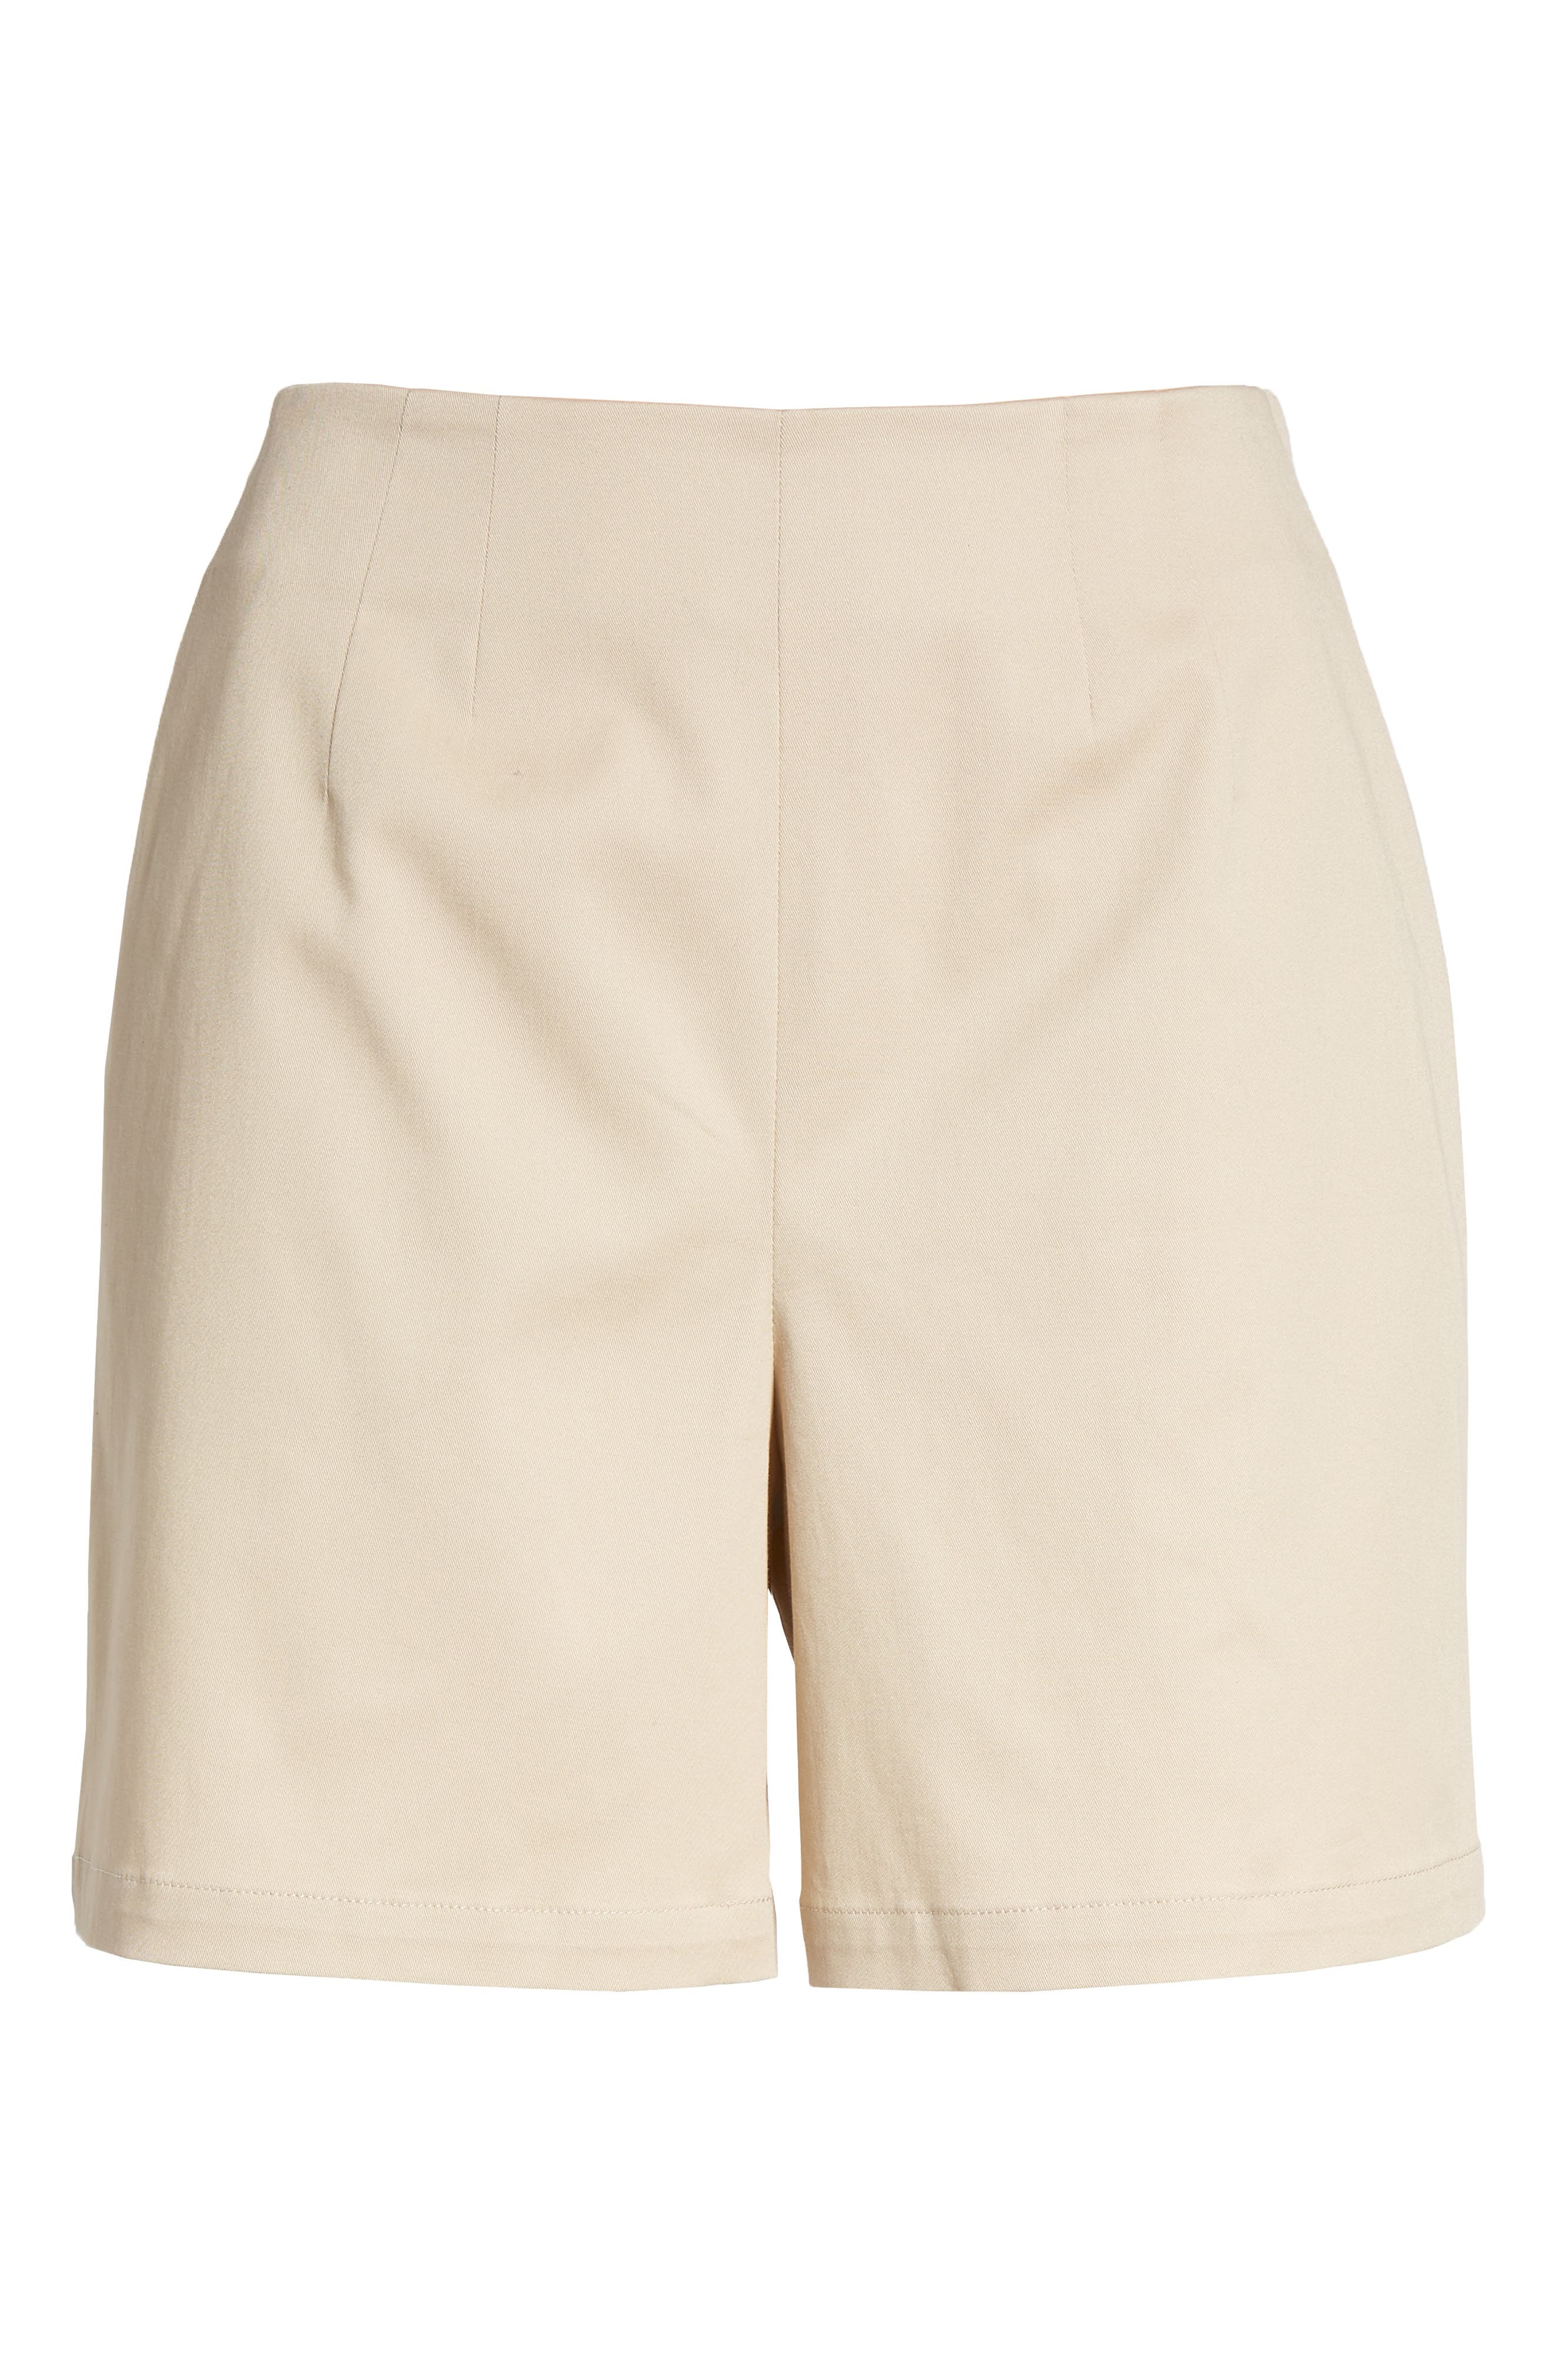 Clean Twill Shorts,                             Alternate thumbnail 6, color,                             Tan